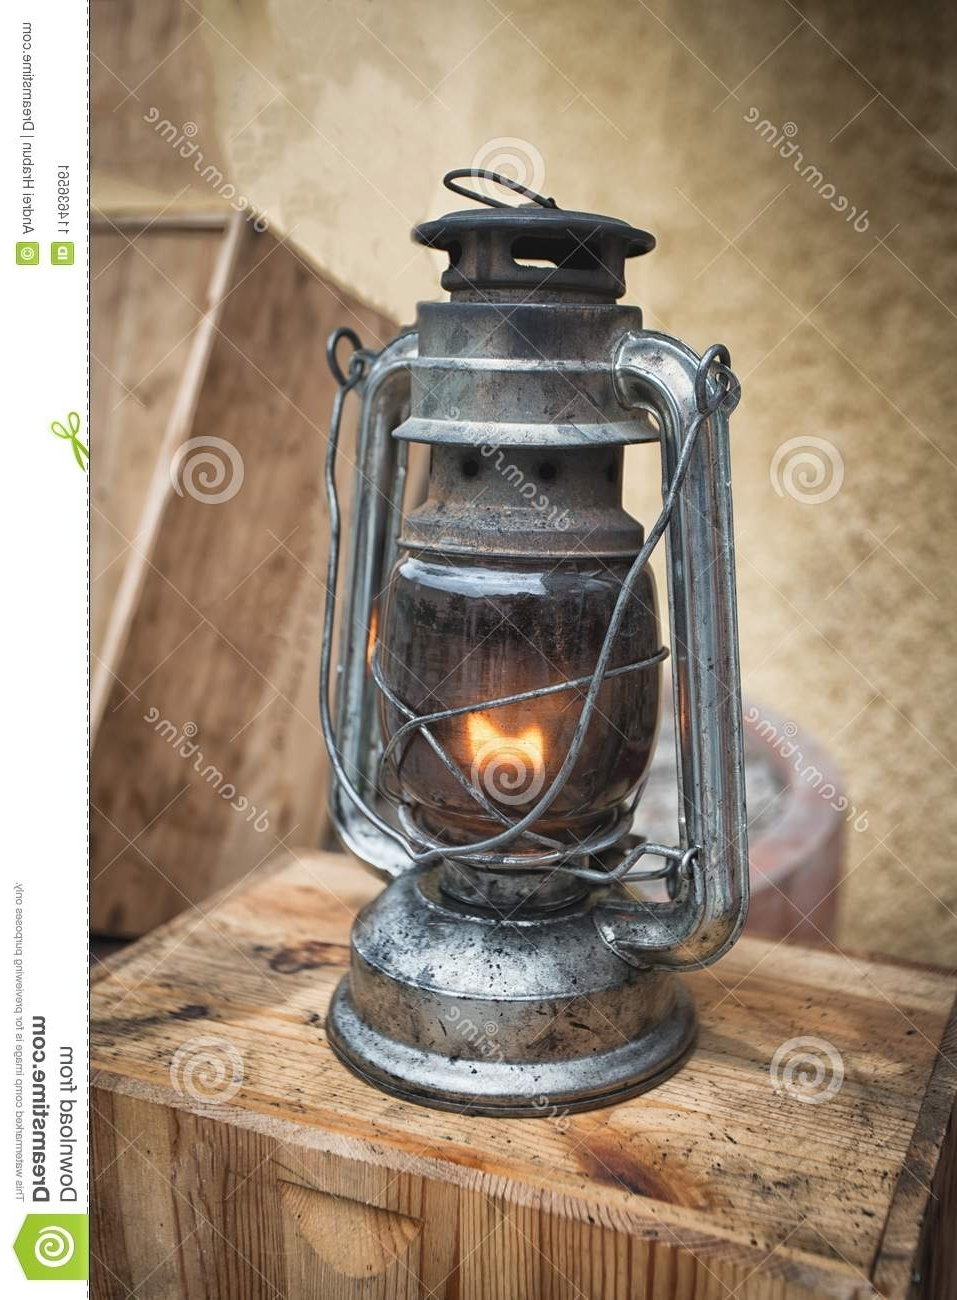 Old Fashioned Lantern On The Wooden Table. Vintage Style Metal Lamp With Regard To Current Outdoor Lanterns For Tables (Gallery 9 of 20)